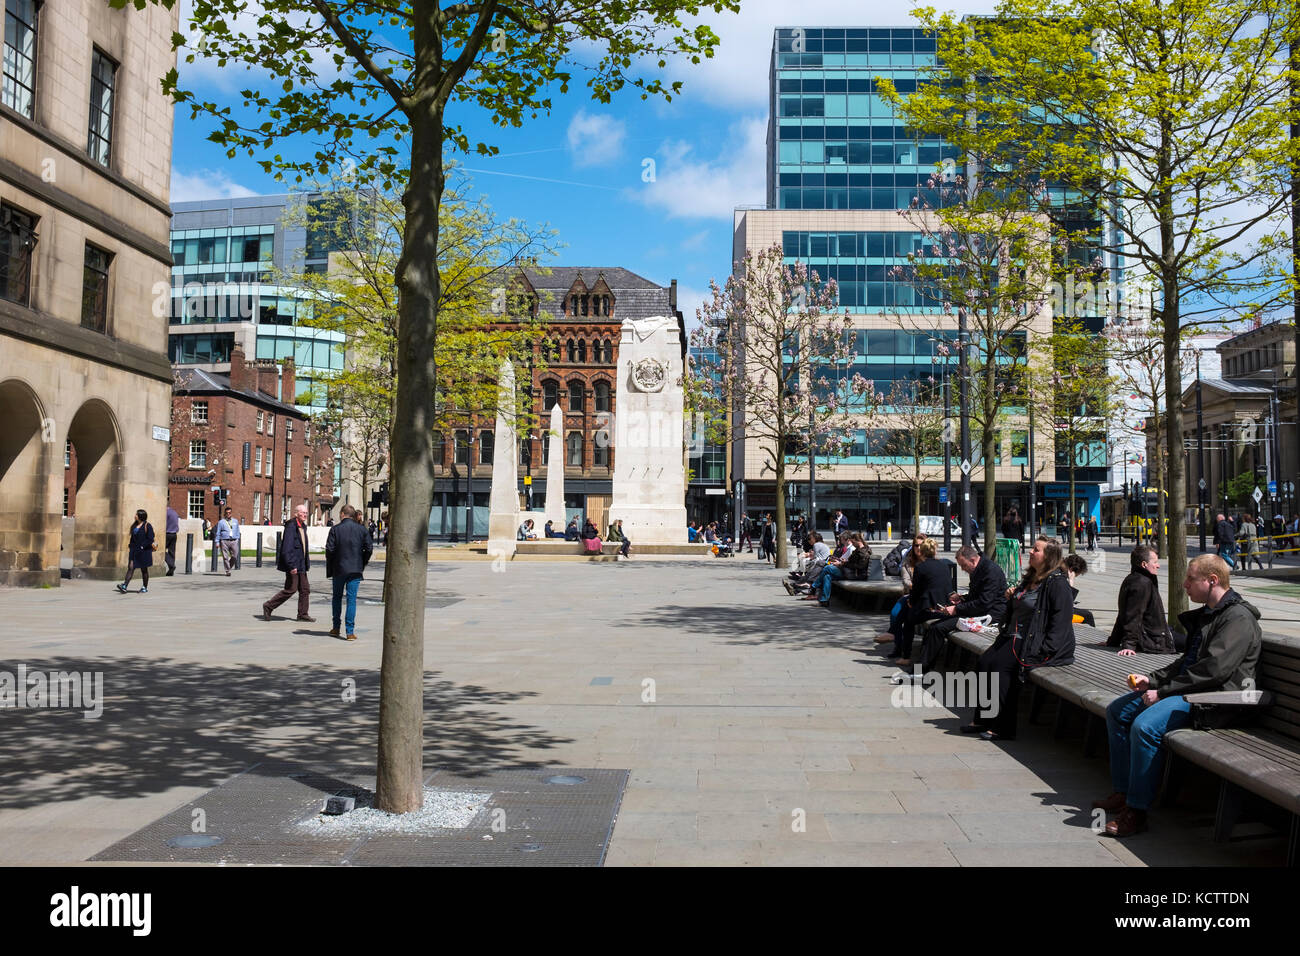 St Peter's Square in Manchester UK - Stock Image